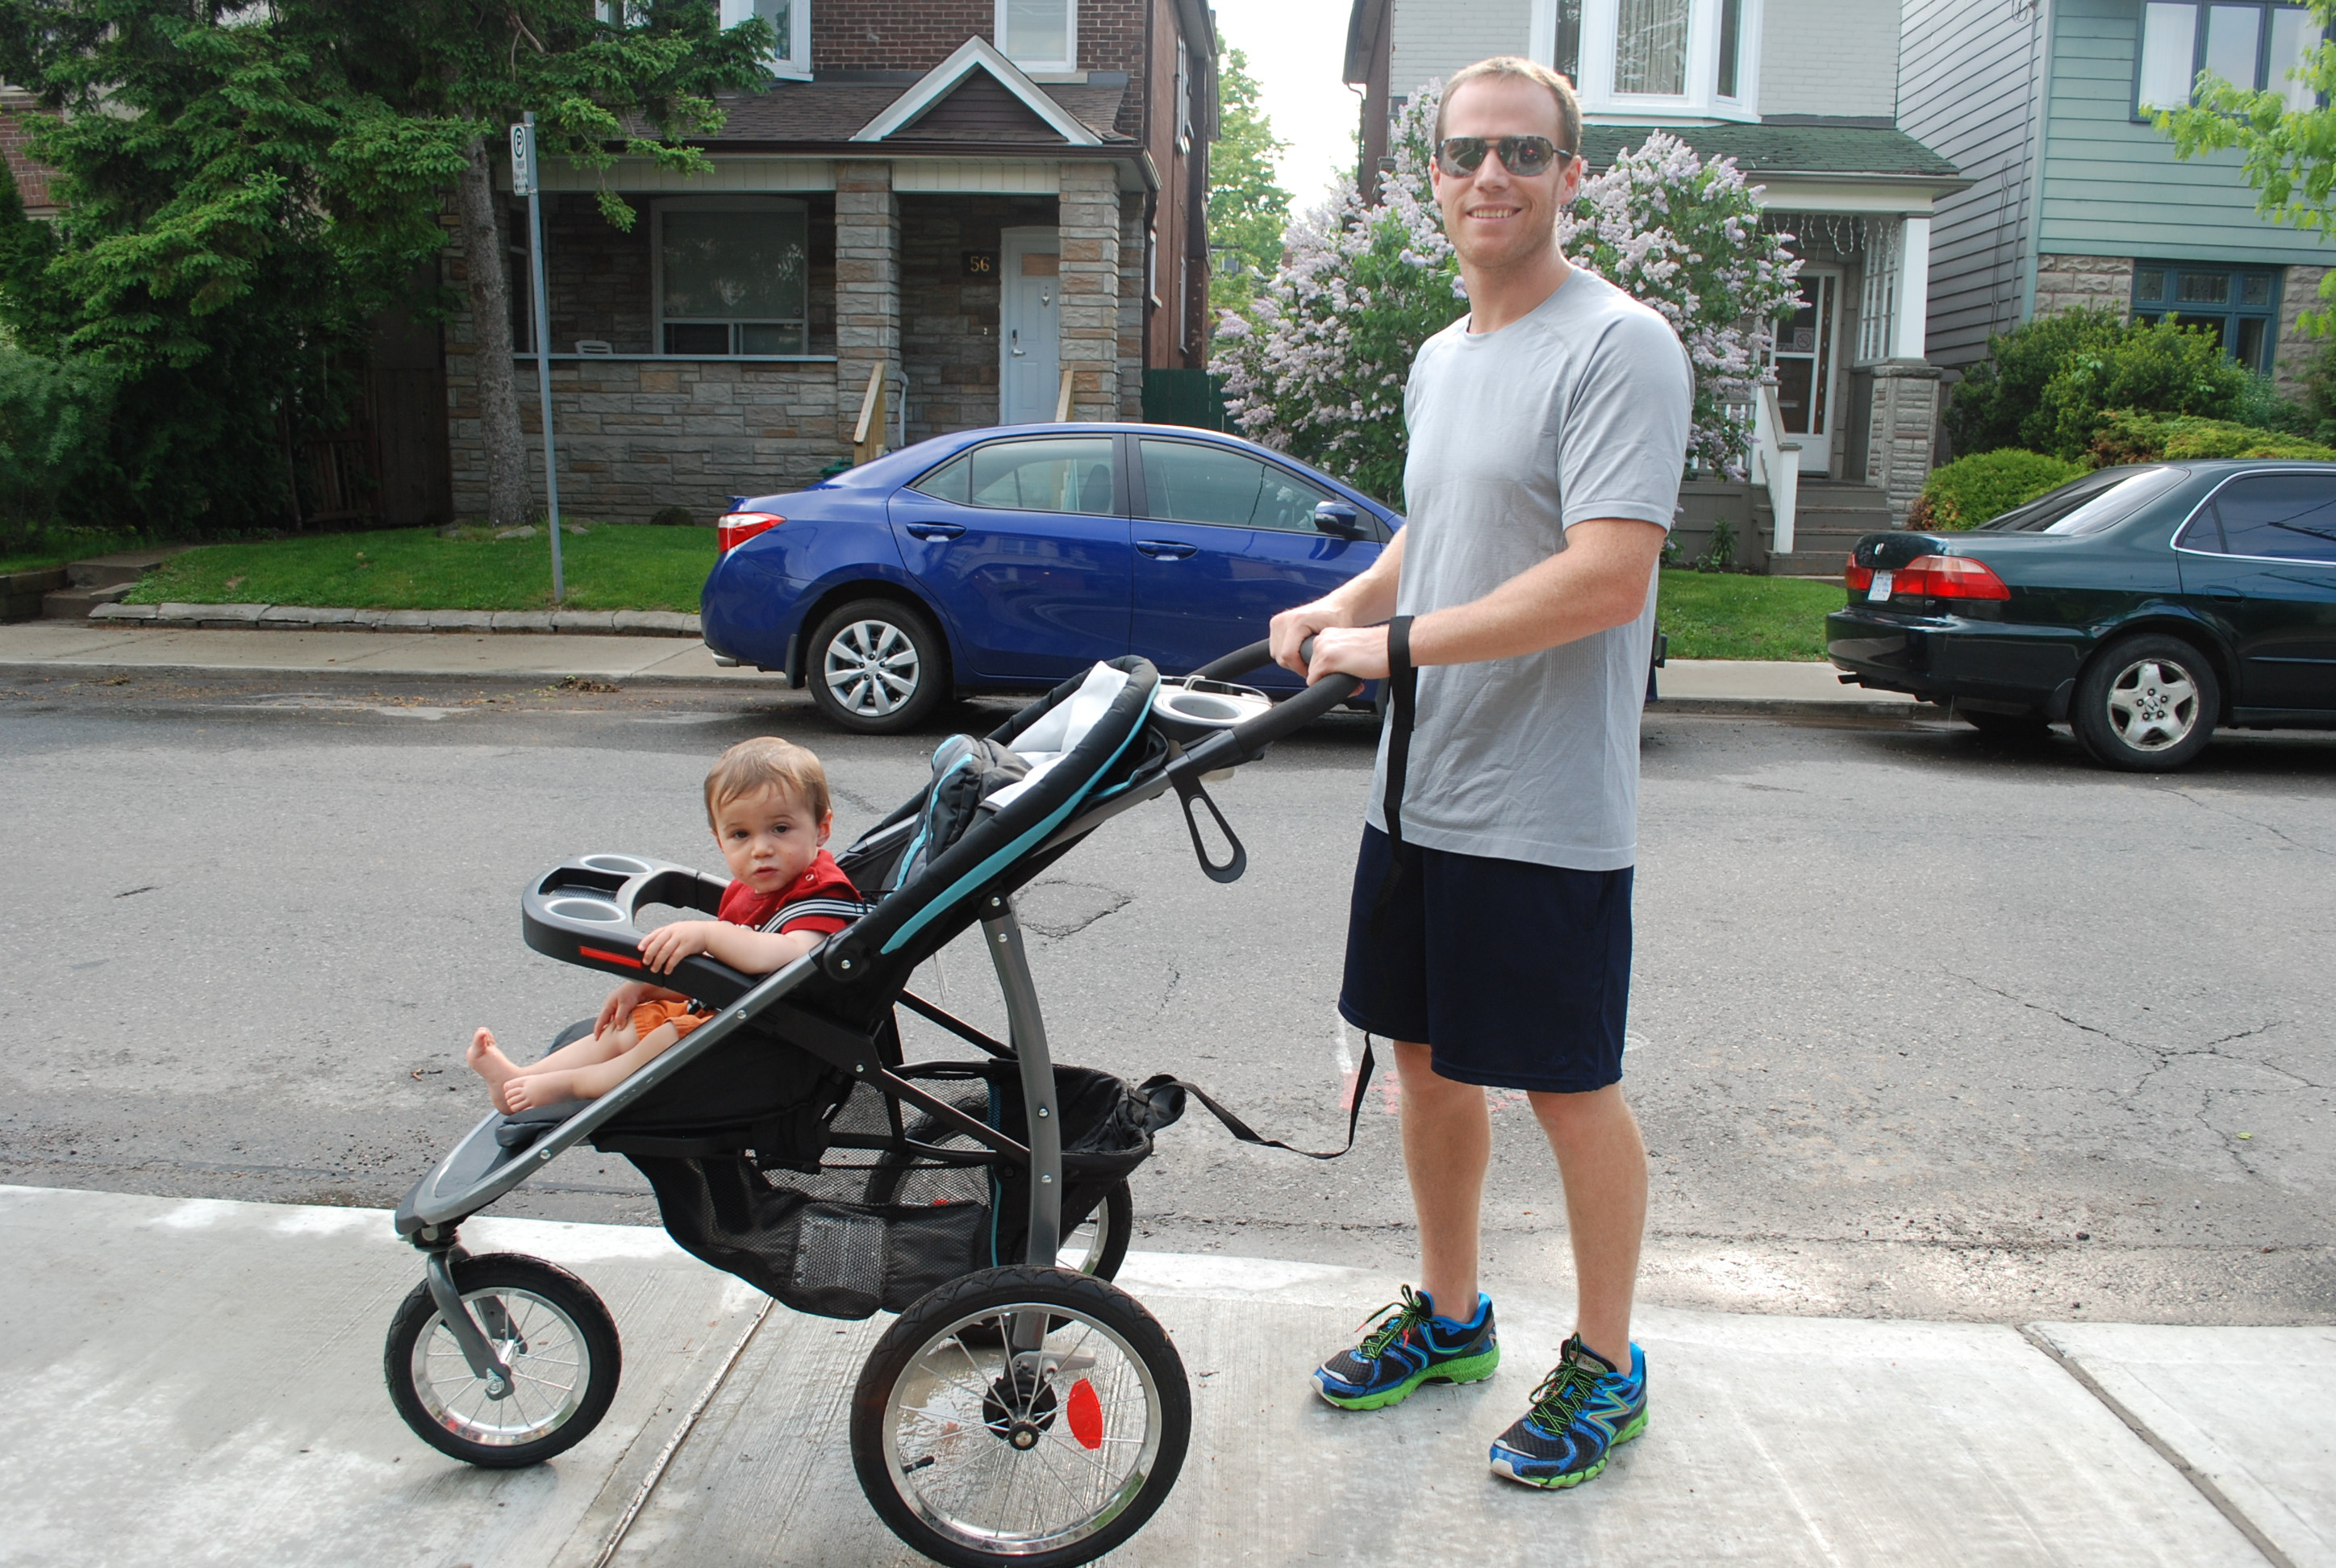 Graco Jogging Stroller Review for getting in shape